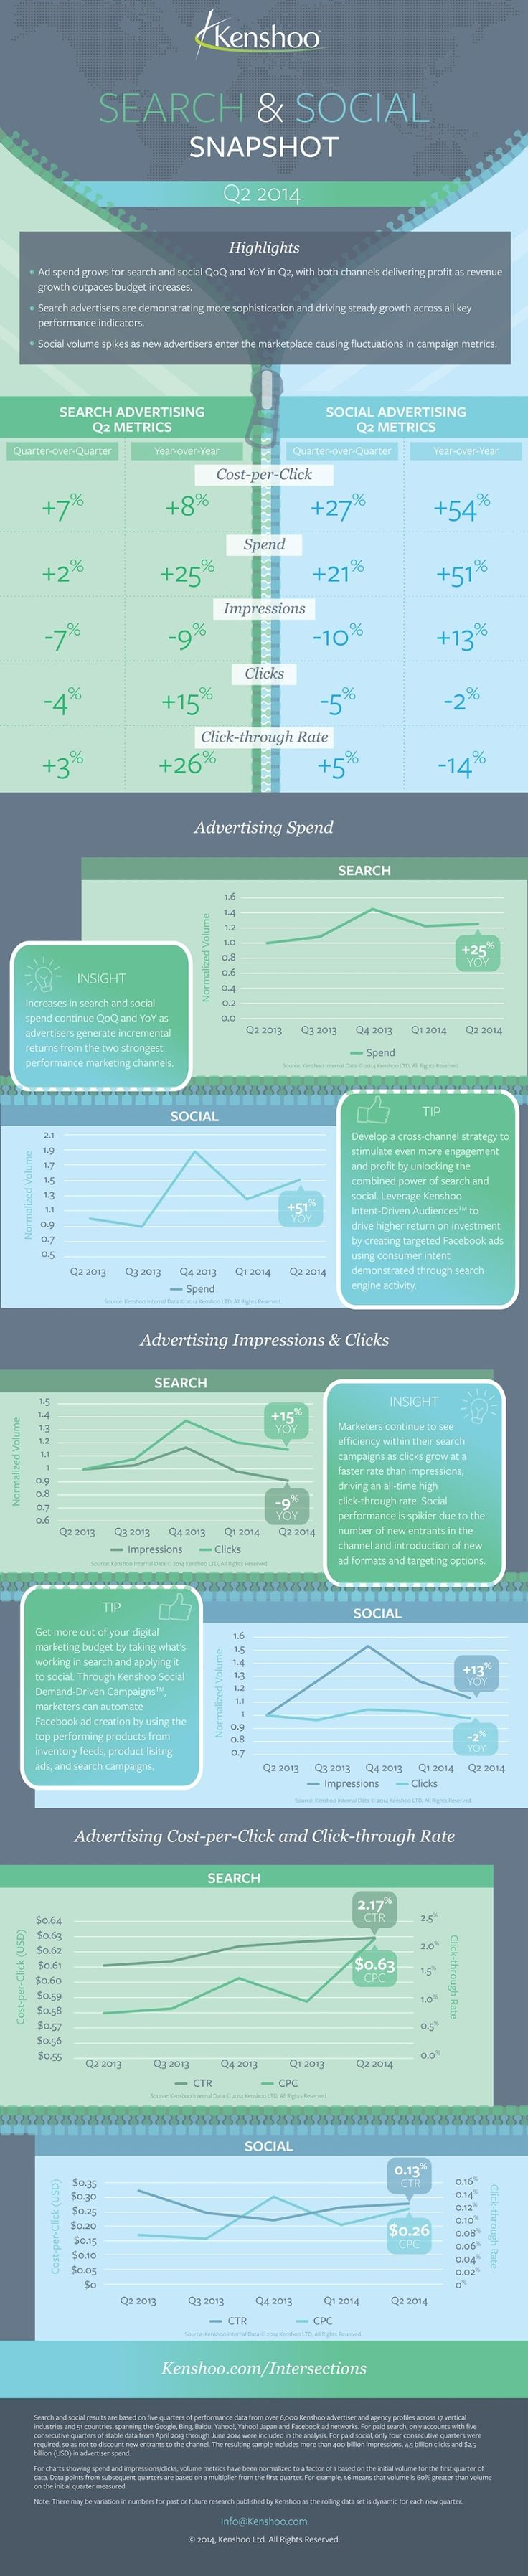 #SocialMedia and Search Advertising Trends: Q2 2014 - #infographic #marketing